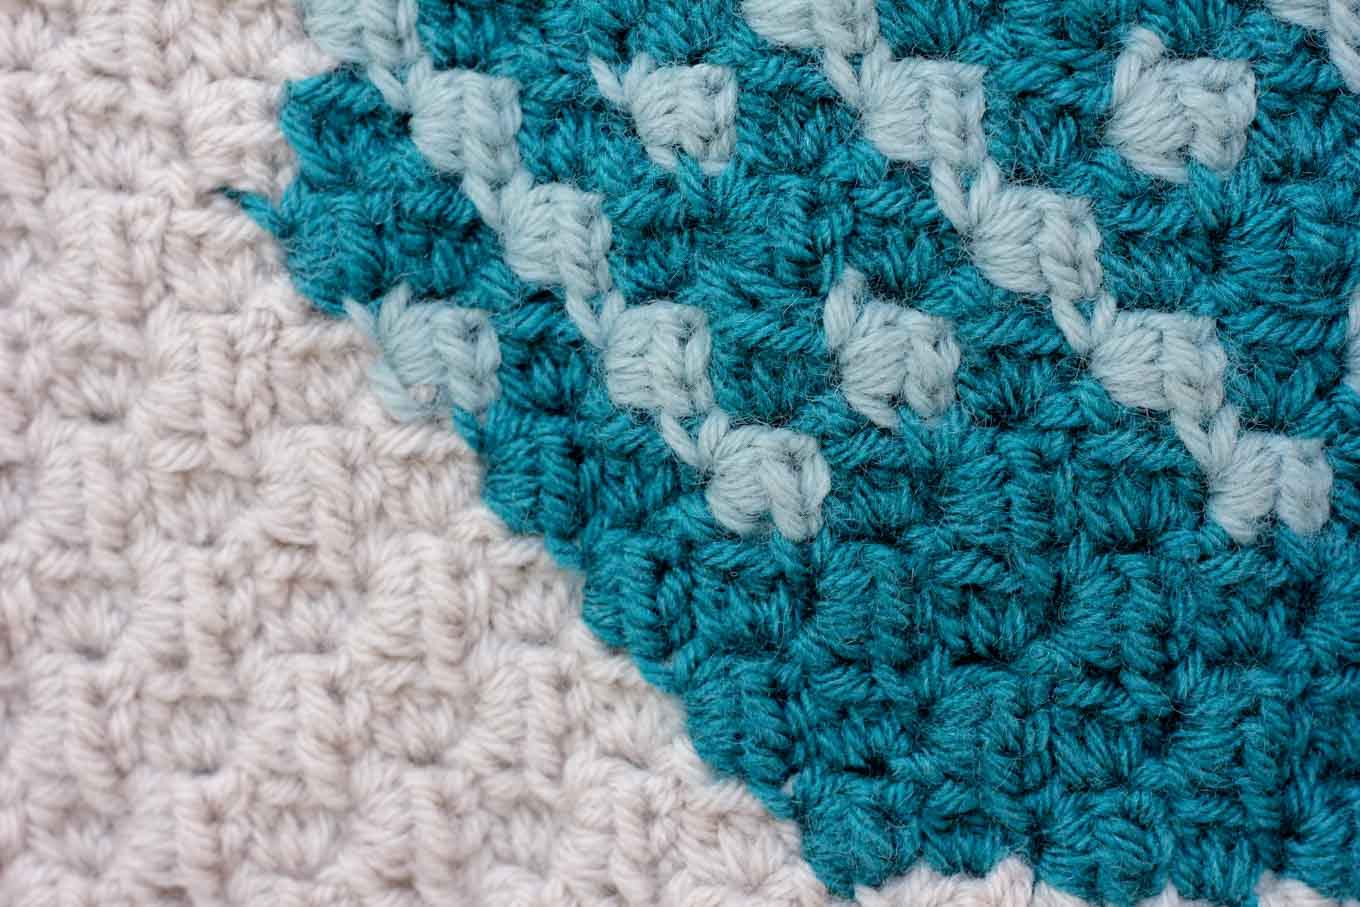 What the texture of c2c crochet (corner to corner) looks like.